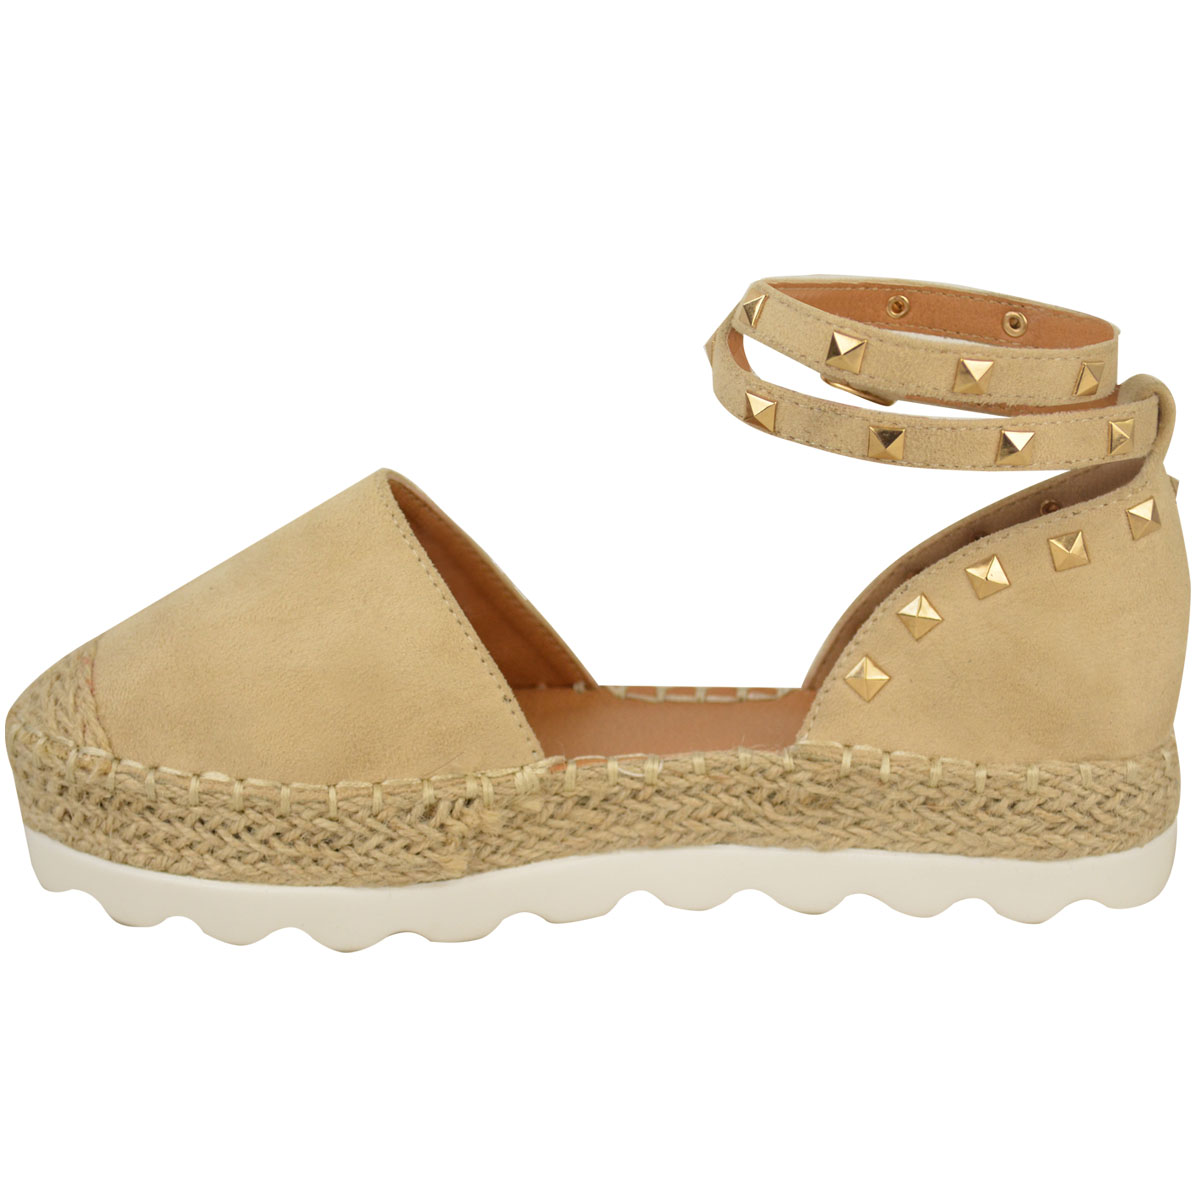 Womens-Ladies-Espadrilles-Flat-Pom-Pom-Sandals-Slip-On-Strappy-Comfy-Size-Shoes thumbnail 12